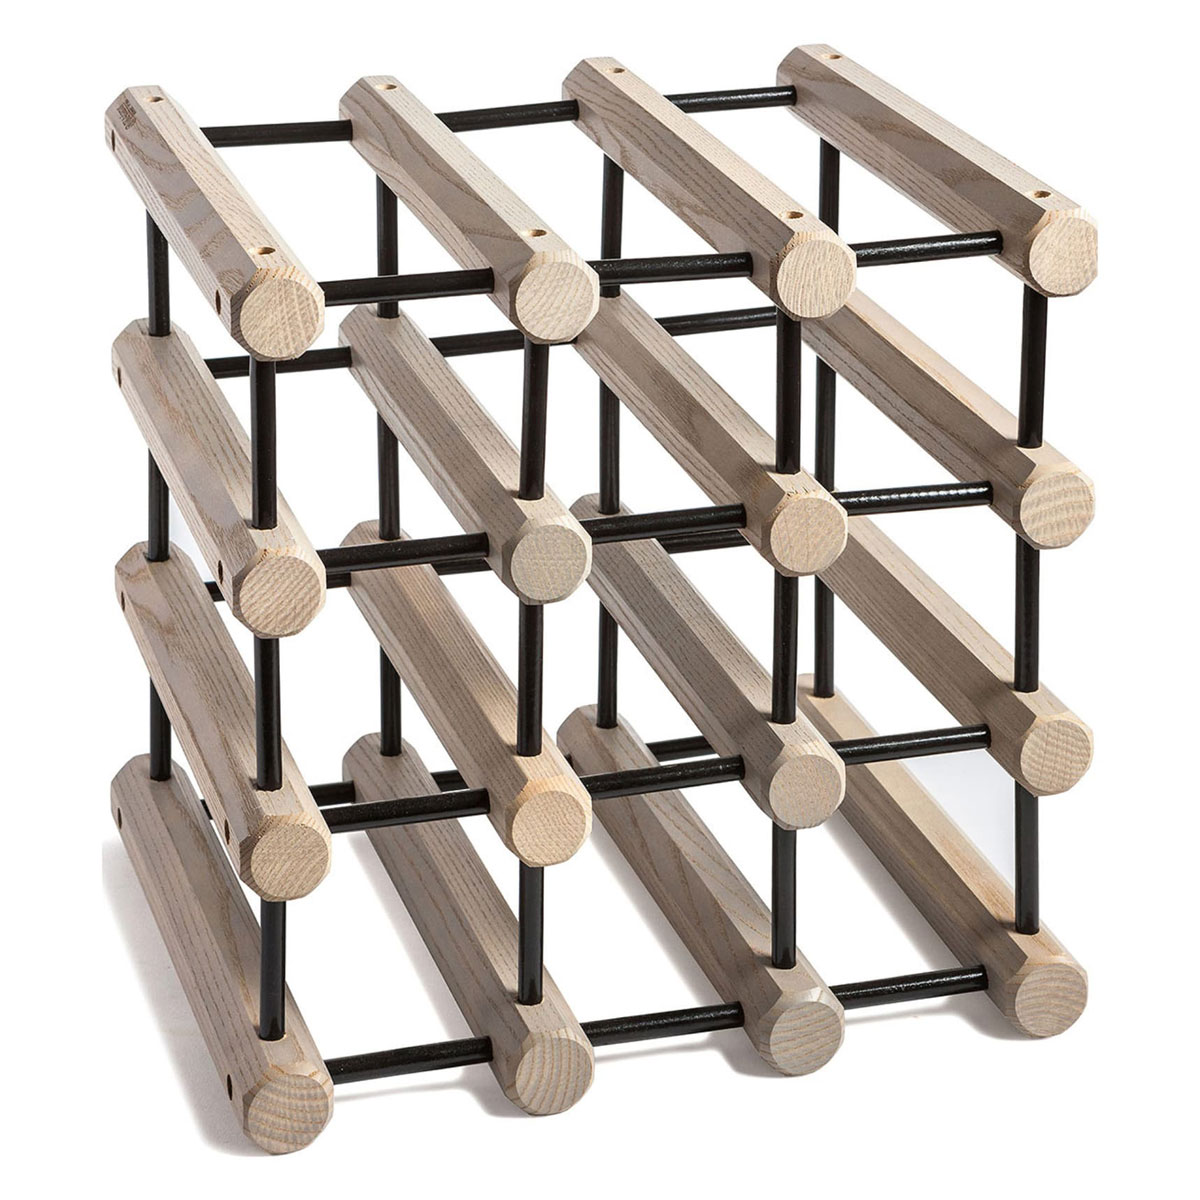 Nordstrom wine rack